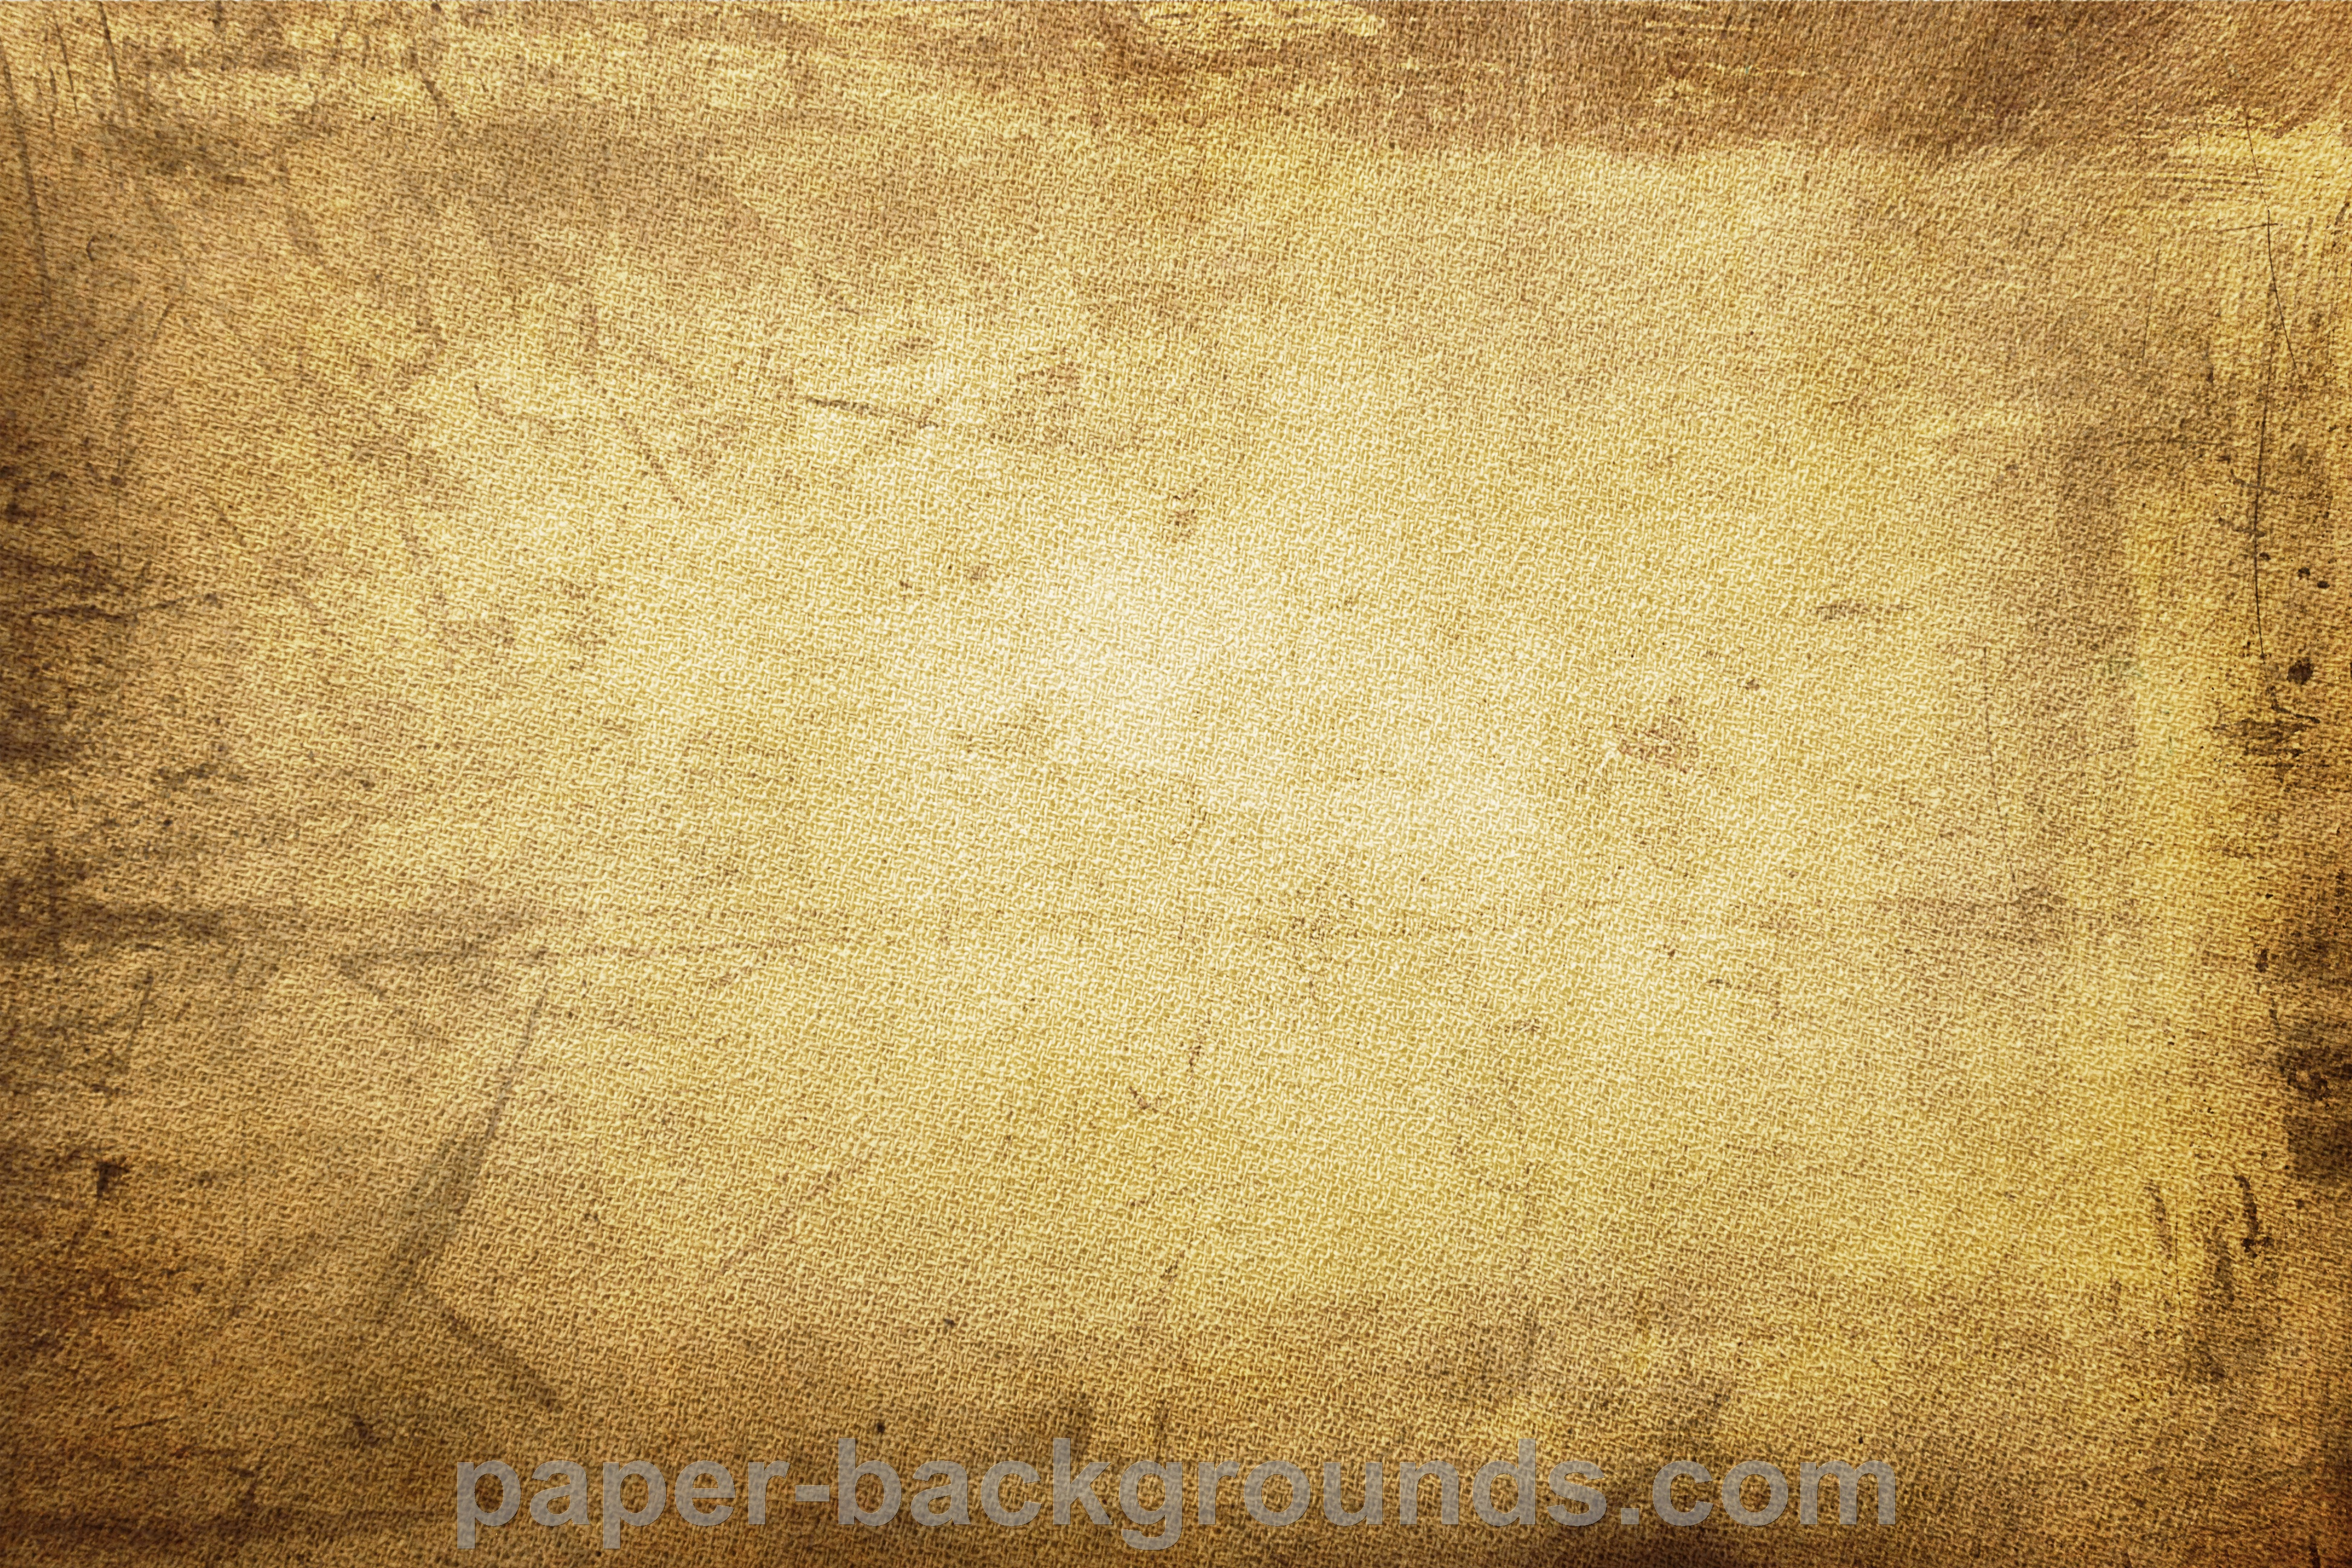 Paper Backgrounds Yellow Vintage Fabric Texture Background 3888x2592